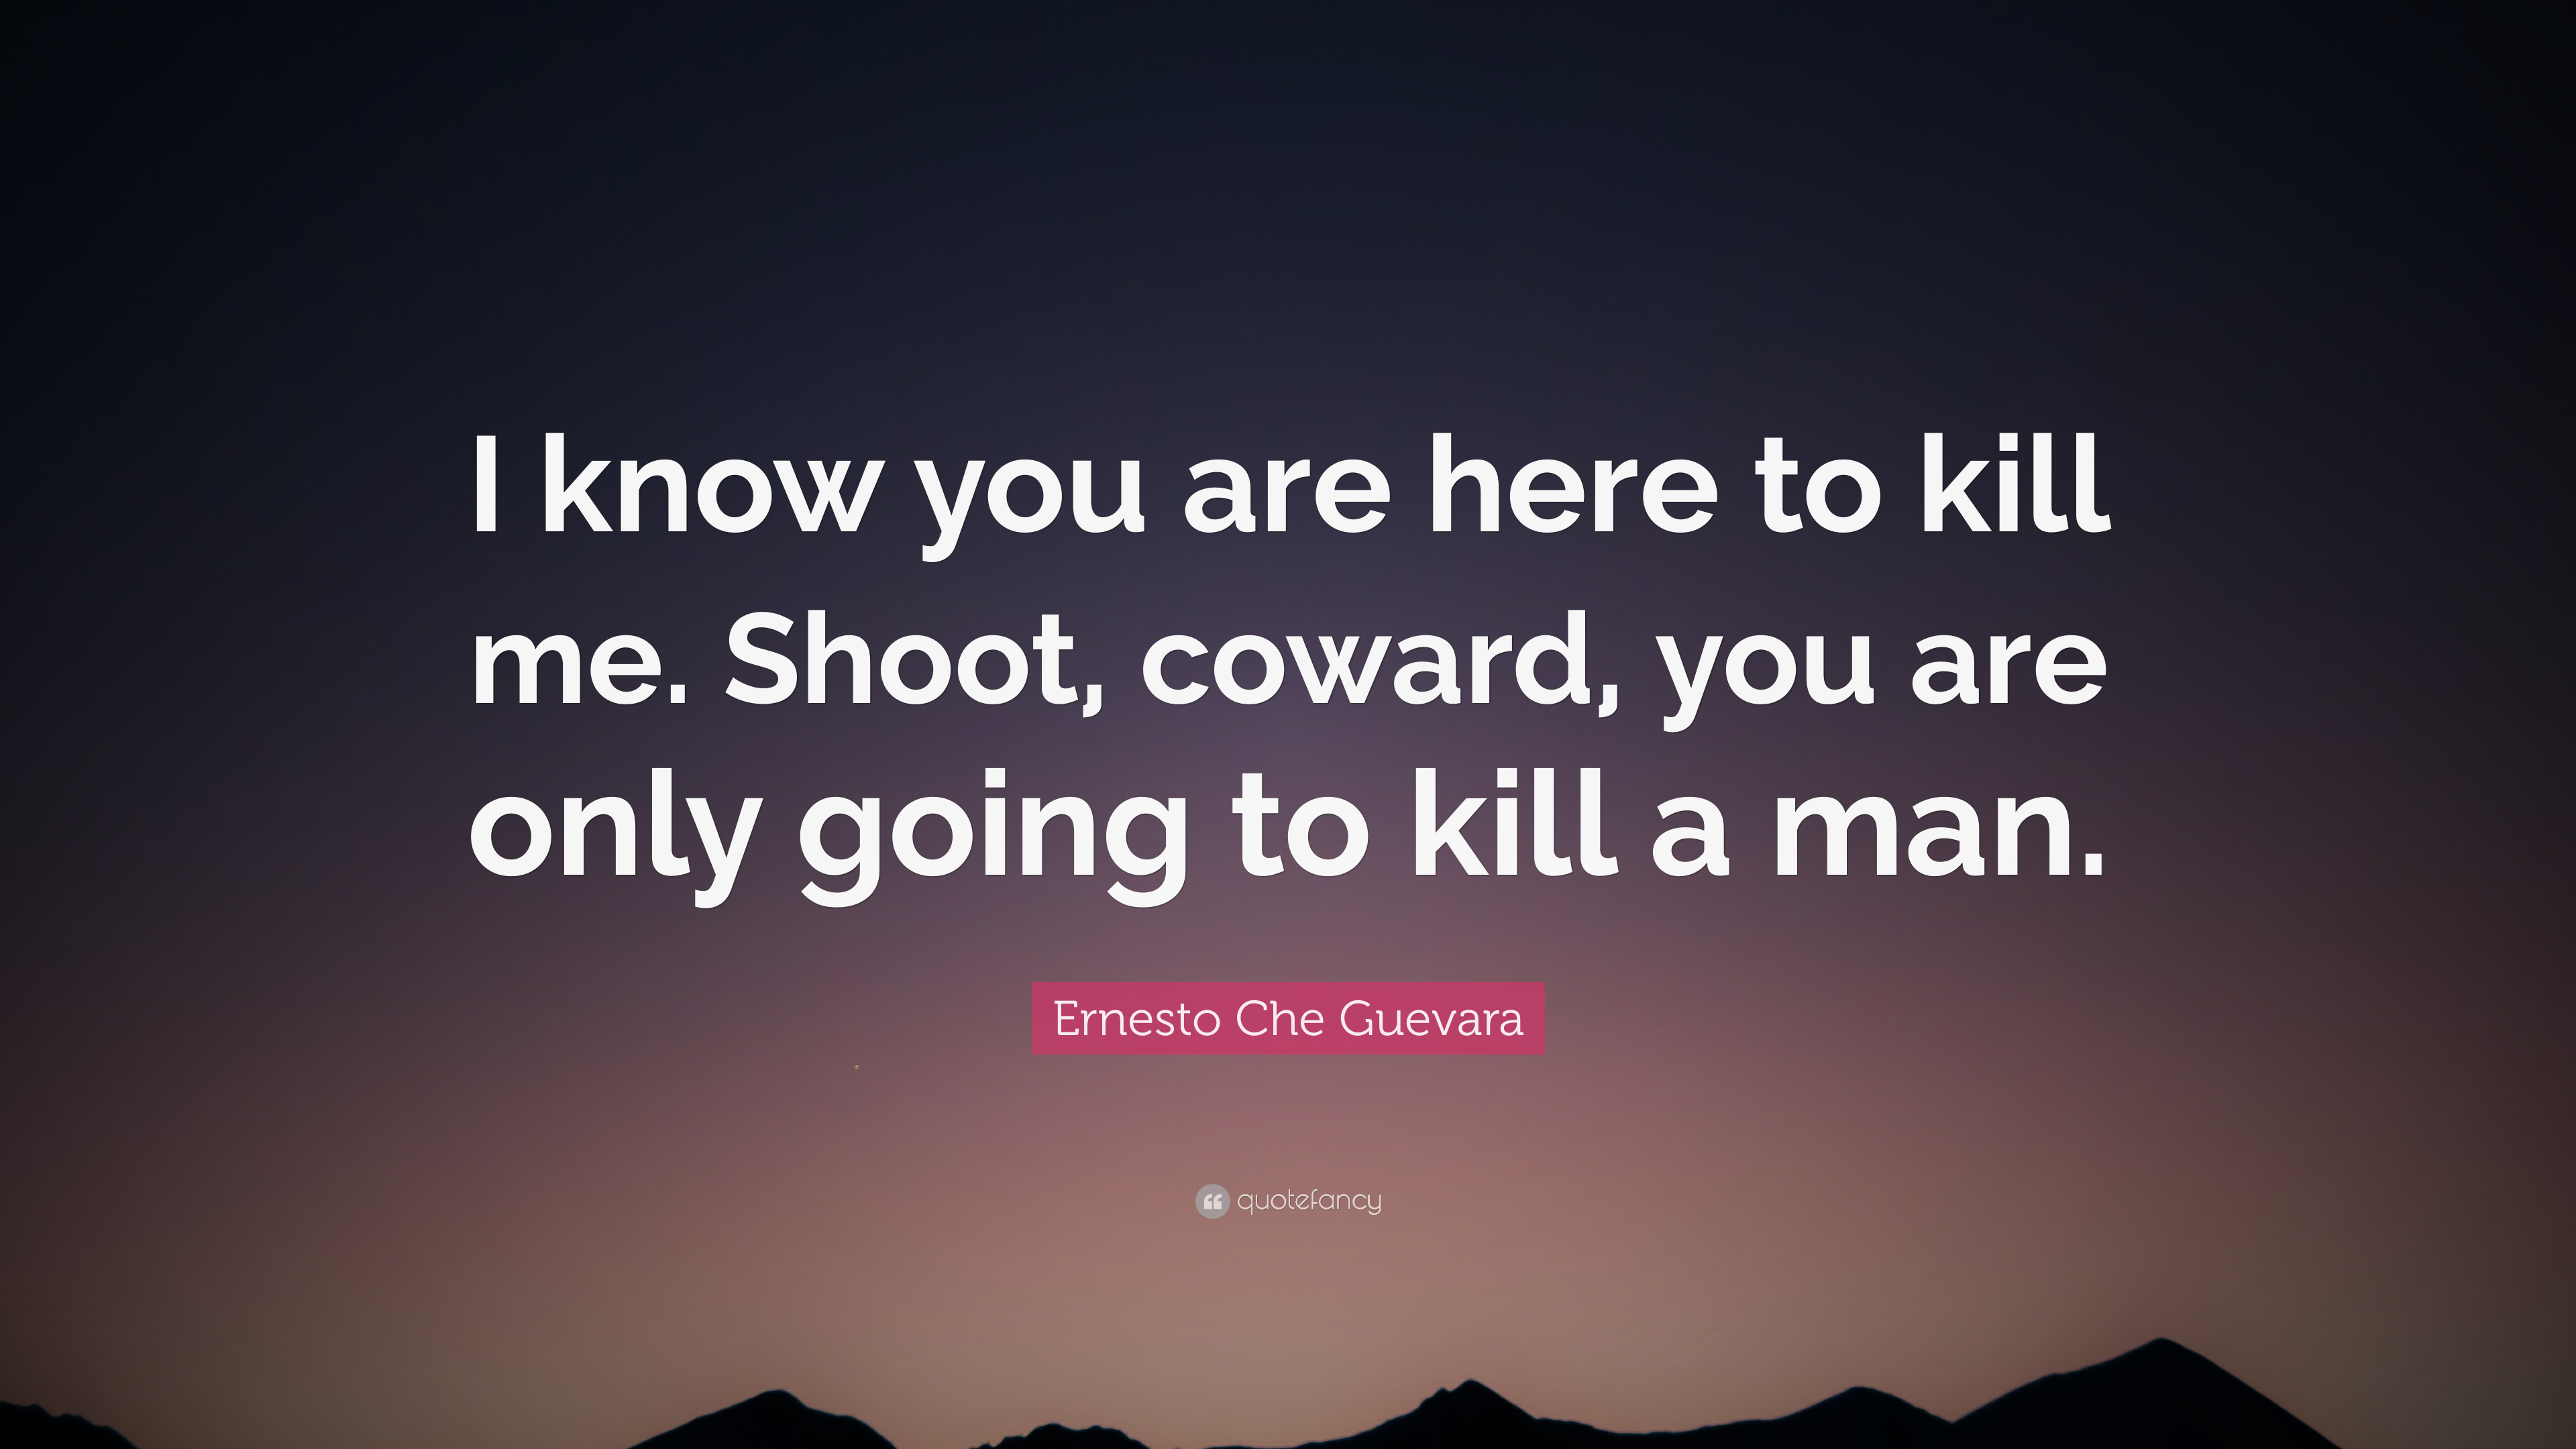 Ernesto Che Guevara Quote I Know You Are Here To Kill Me Shoot